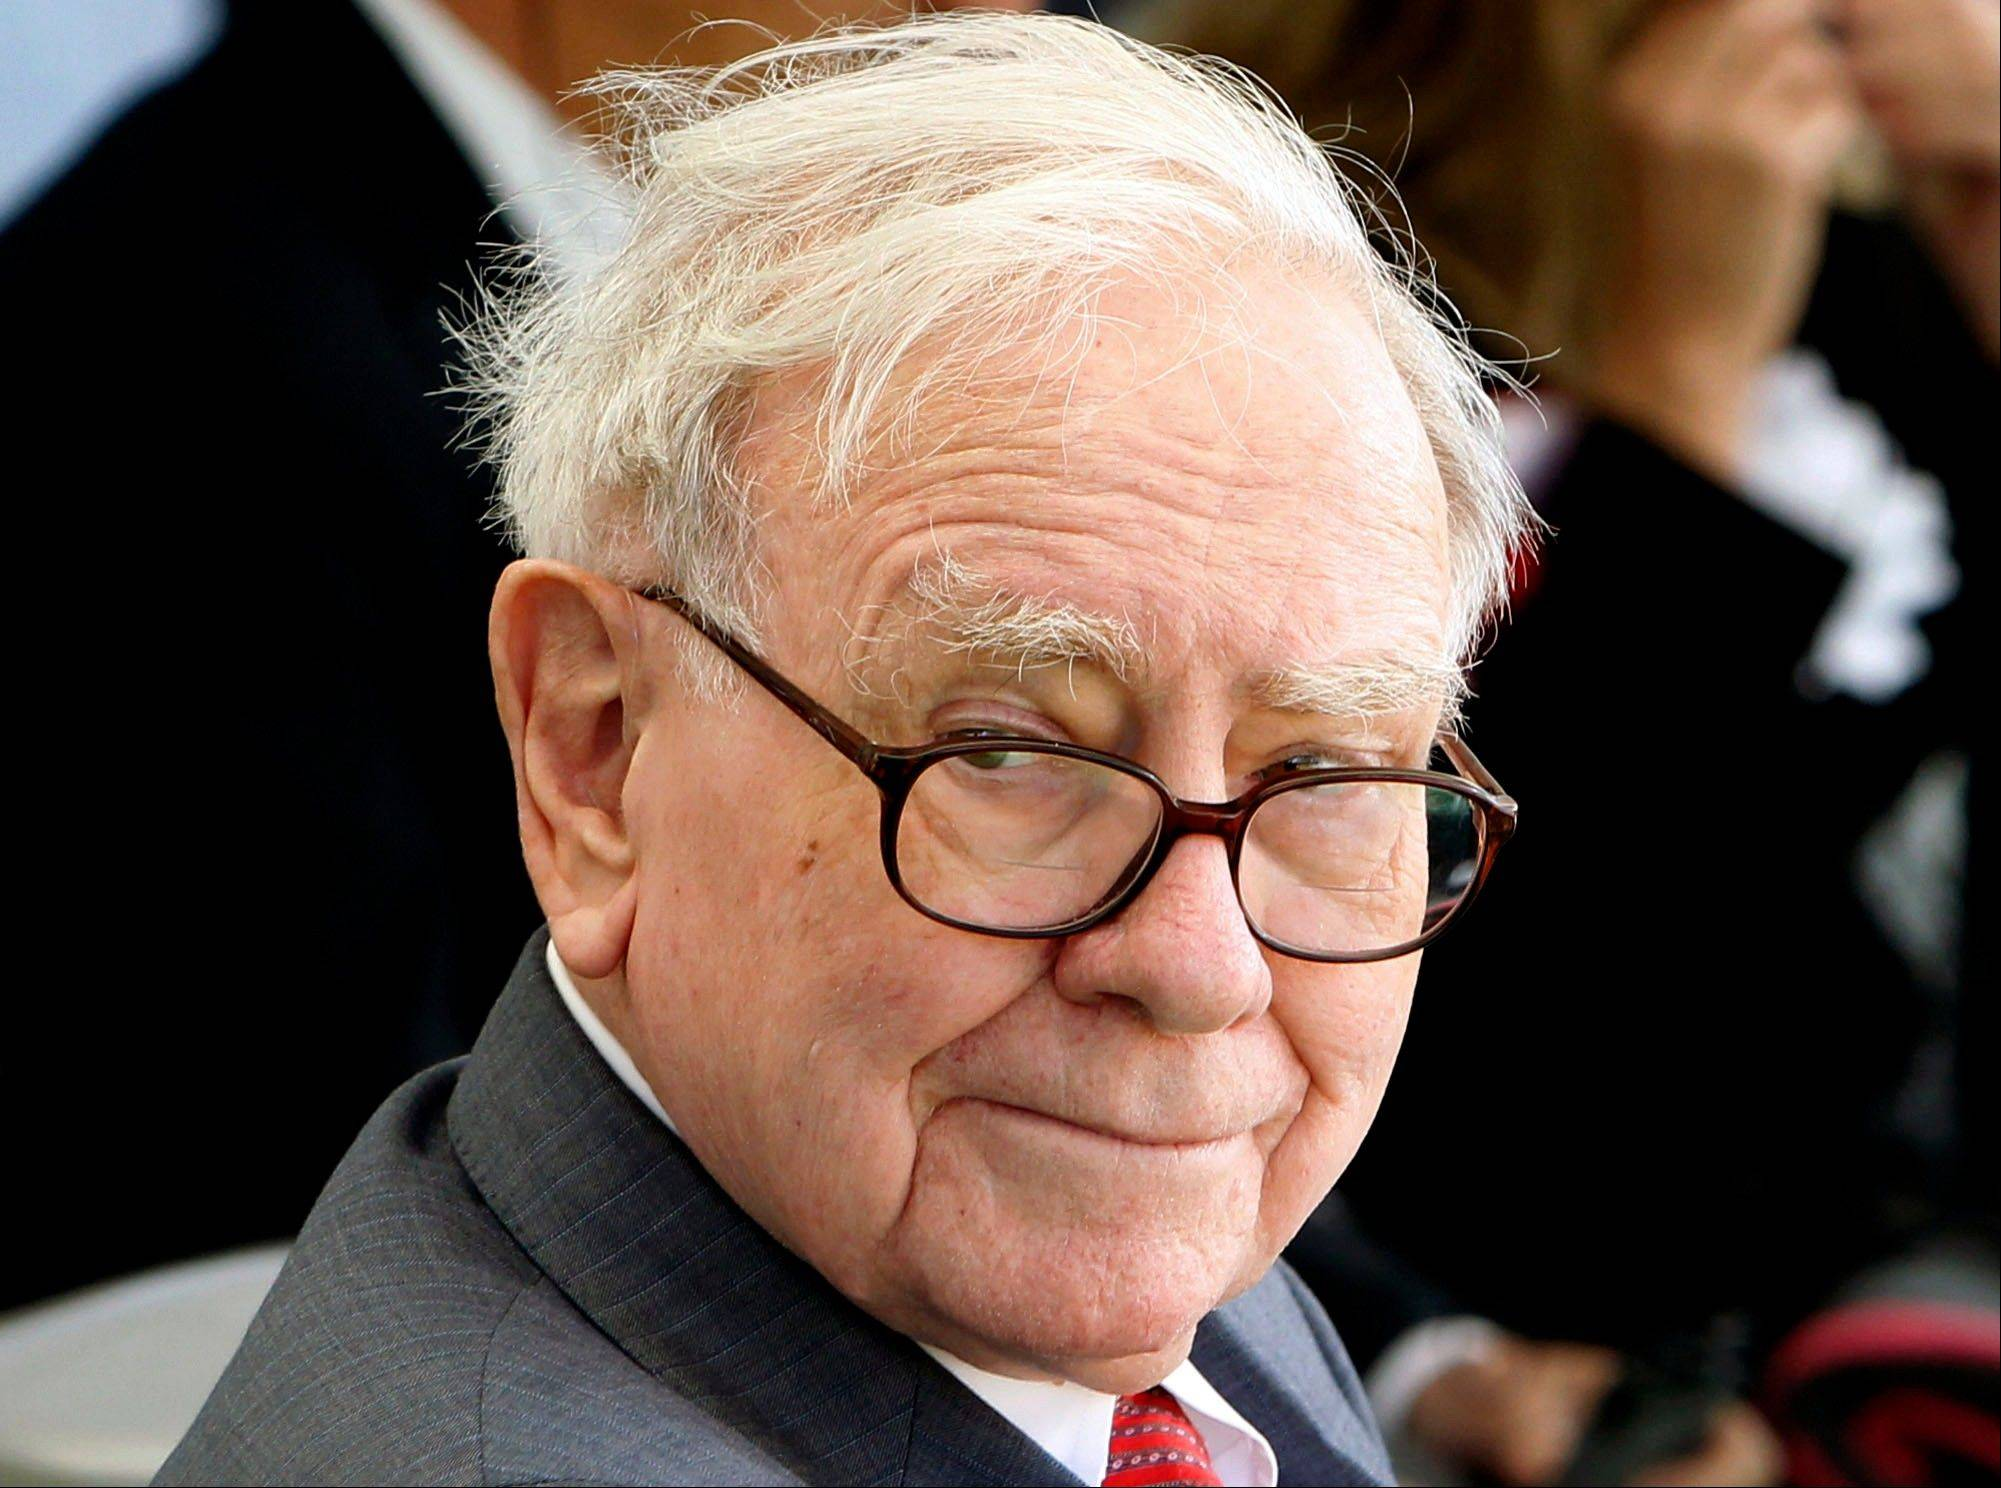 Billionaire Warren Buffett said Wednesday it would be idiocy for the nation's leaders to allow the United States to default on its bills.